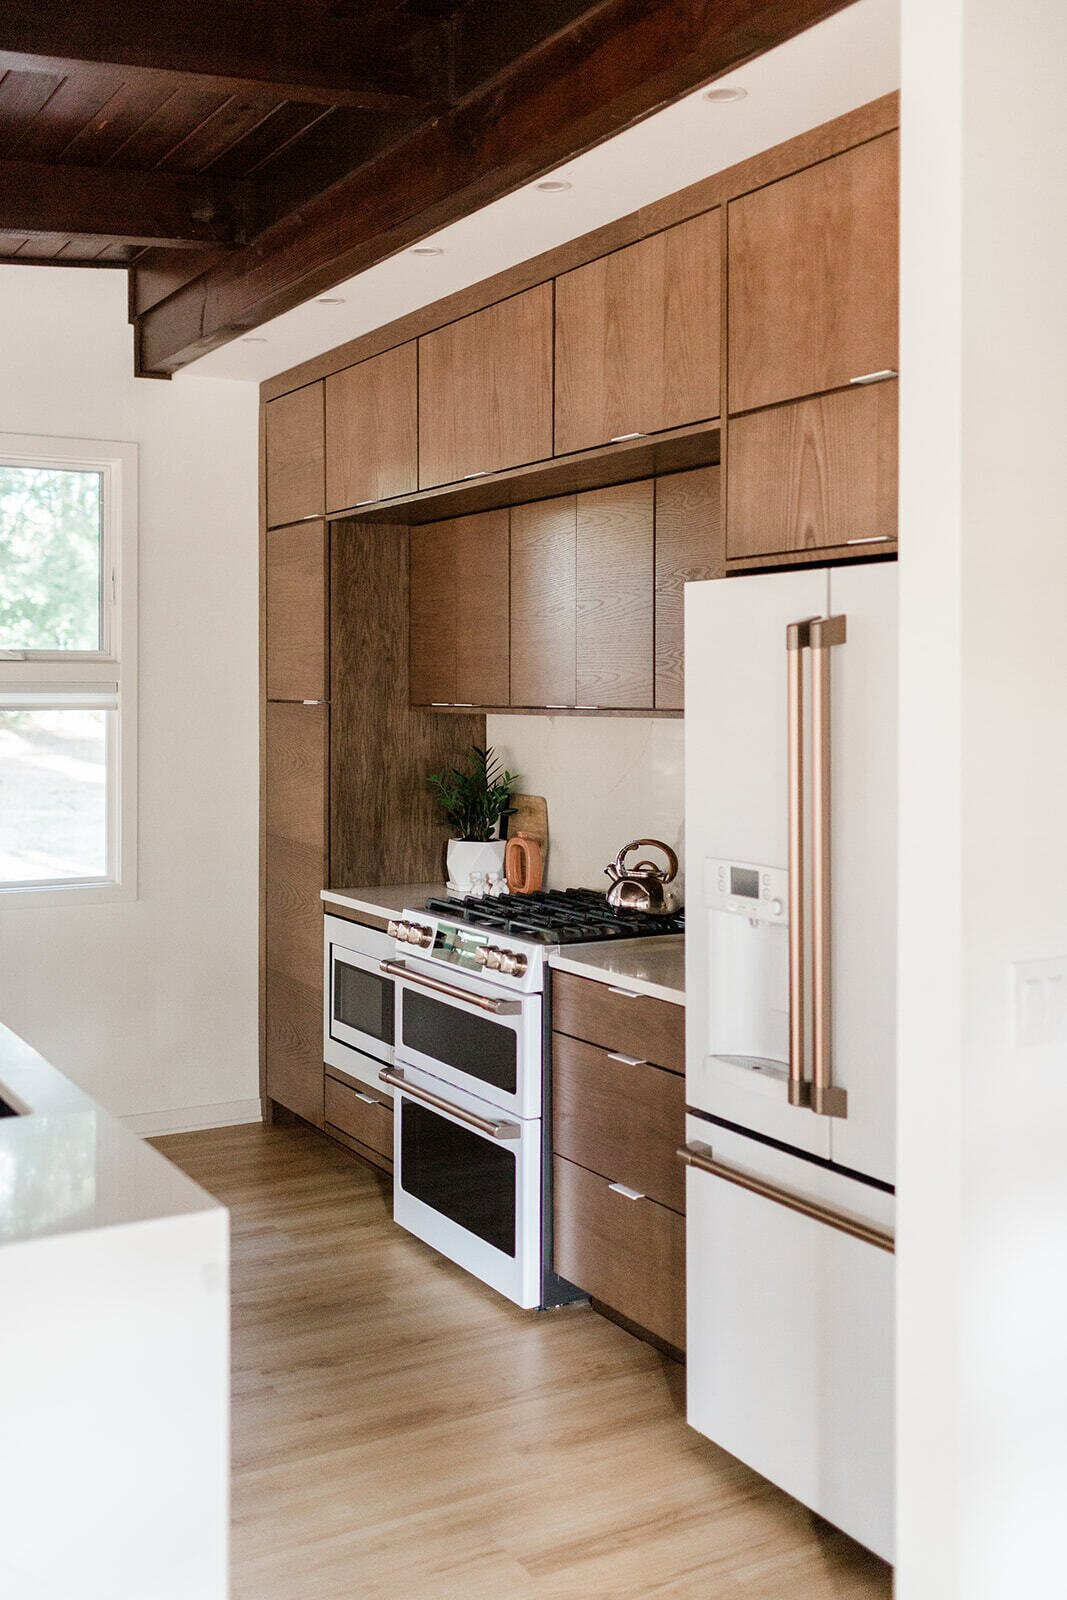 The updated kitchen features all-new cabinetry and appliances from GE's Cafe line.  Photo 12 of 21 in Before & After: A Renovated Iowan Midcentury House Impresses With an Affordable $330K Price Point